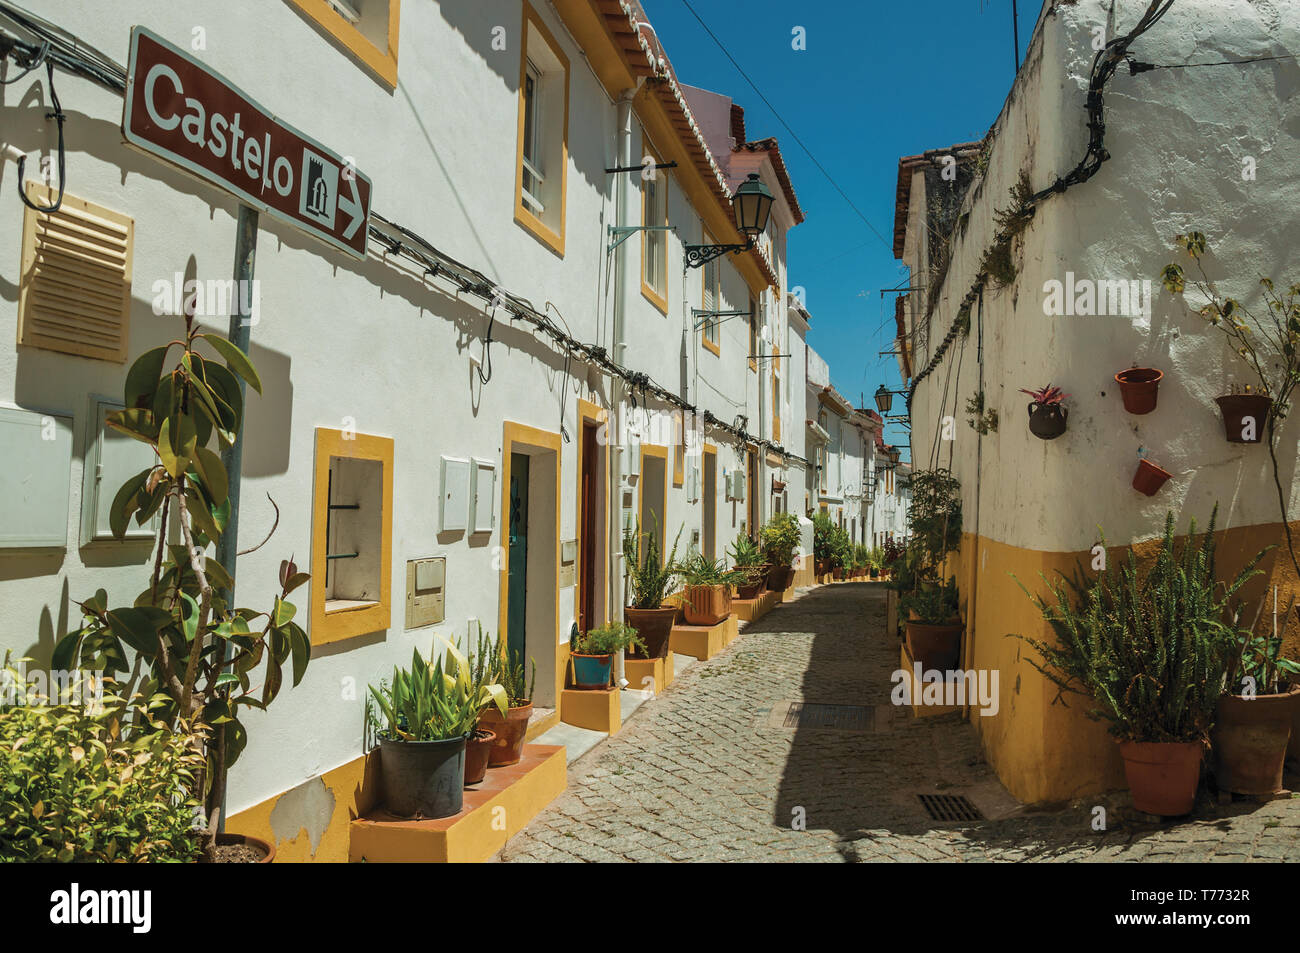 Old colorful houses and signpost indicating the Castle in a narrow alley at Elvas. A gracious city on the easternmost frontier of Portugal. - Stock Image